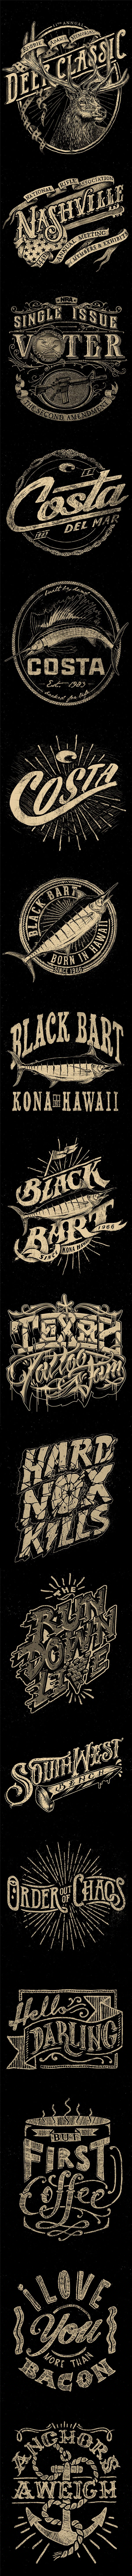 Hand Drawn Typography By Jeff Trish || Weekly typography inspiration for everyone! Introducing Moire Studios a thriving website and graphic design studio. Feel Free to Follow us @moirestudiosjkt to see more outstanding pins like this. Or visit our website www.moirestudiosjkt.com to learn more about us.  #typography #GraphicDesign ||